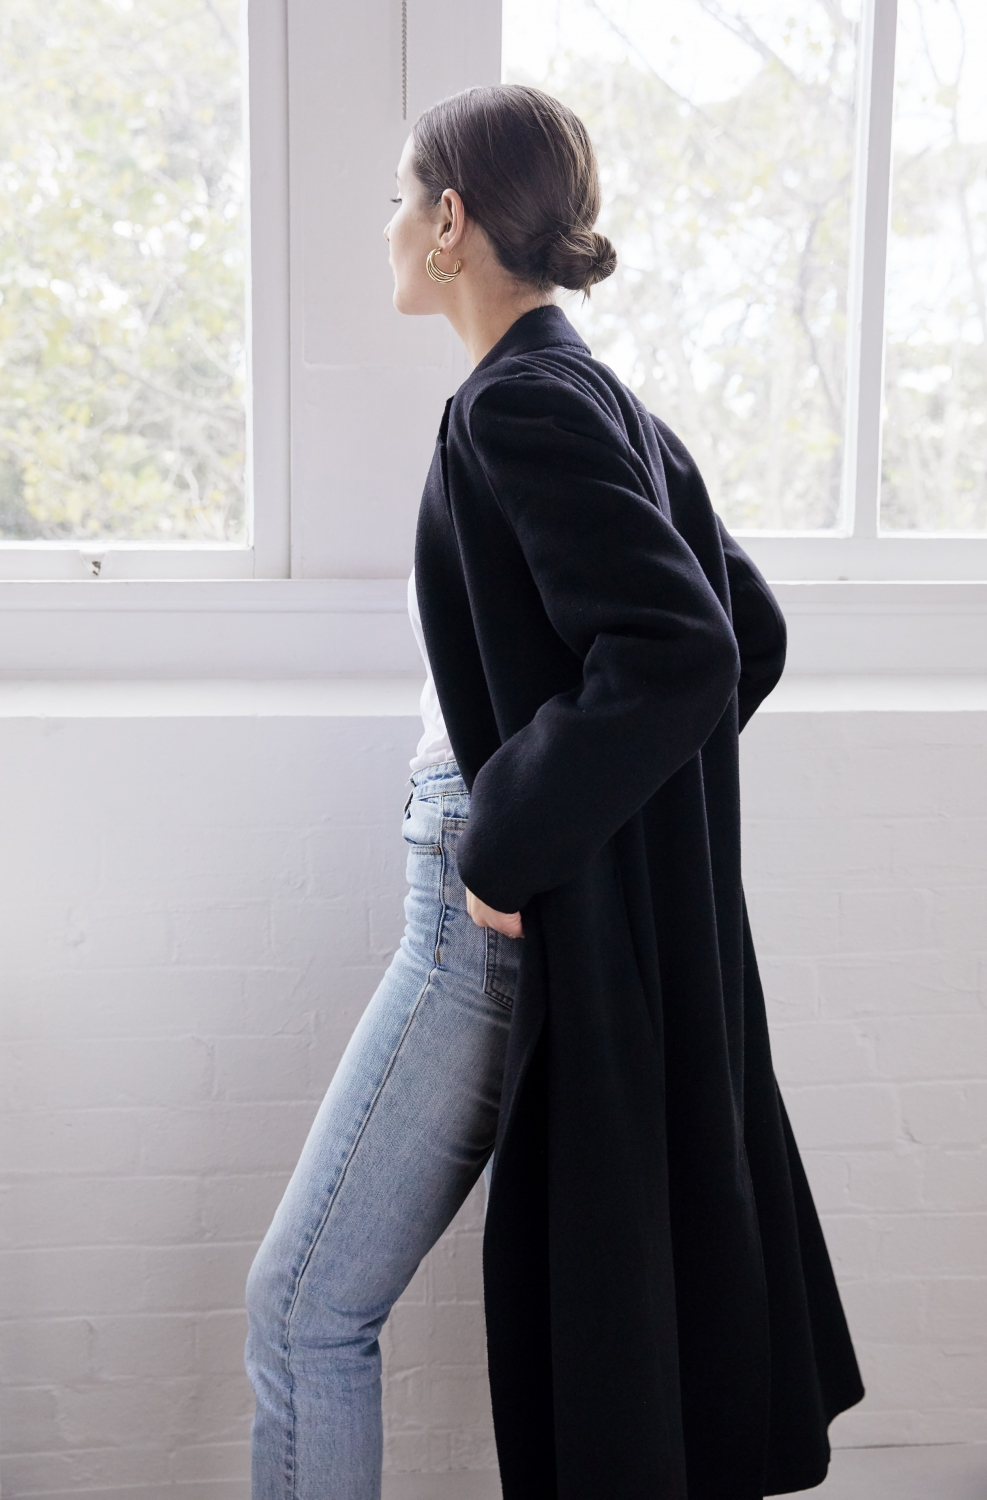 Long Black Coat and Blue Jeans | Style | Outfit | HarperandHarley